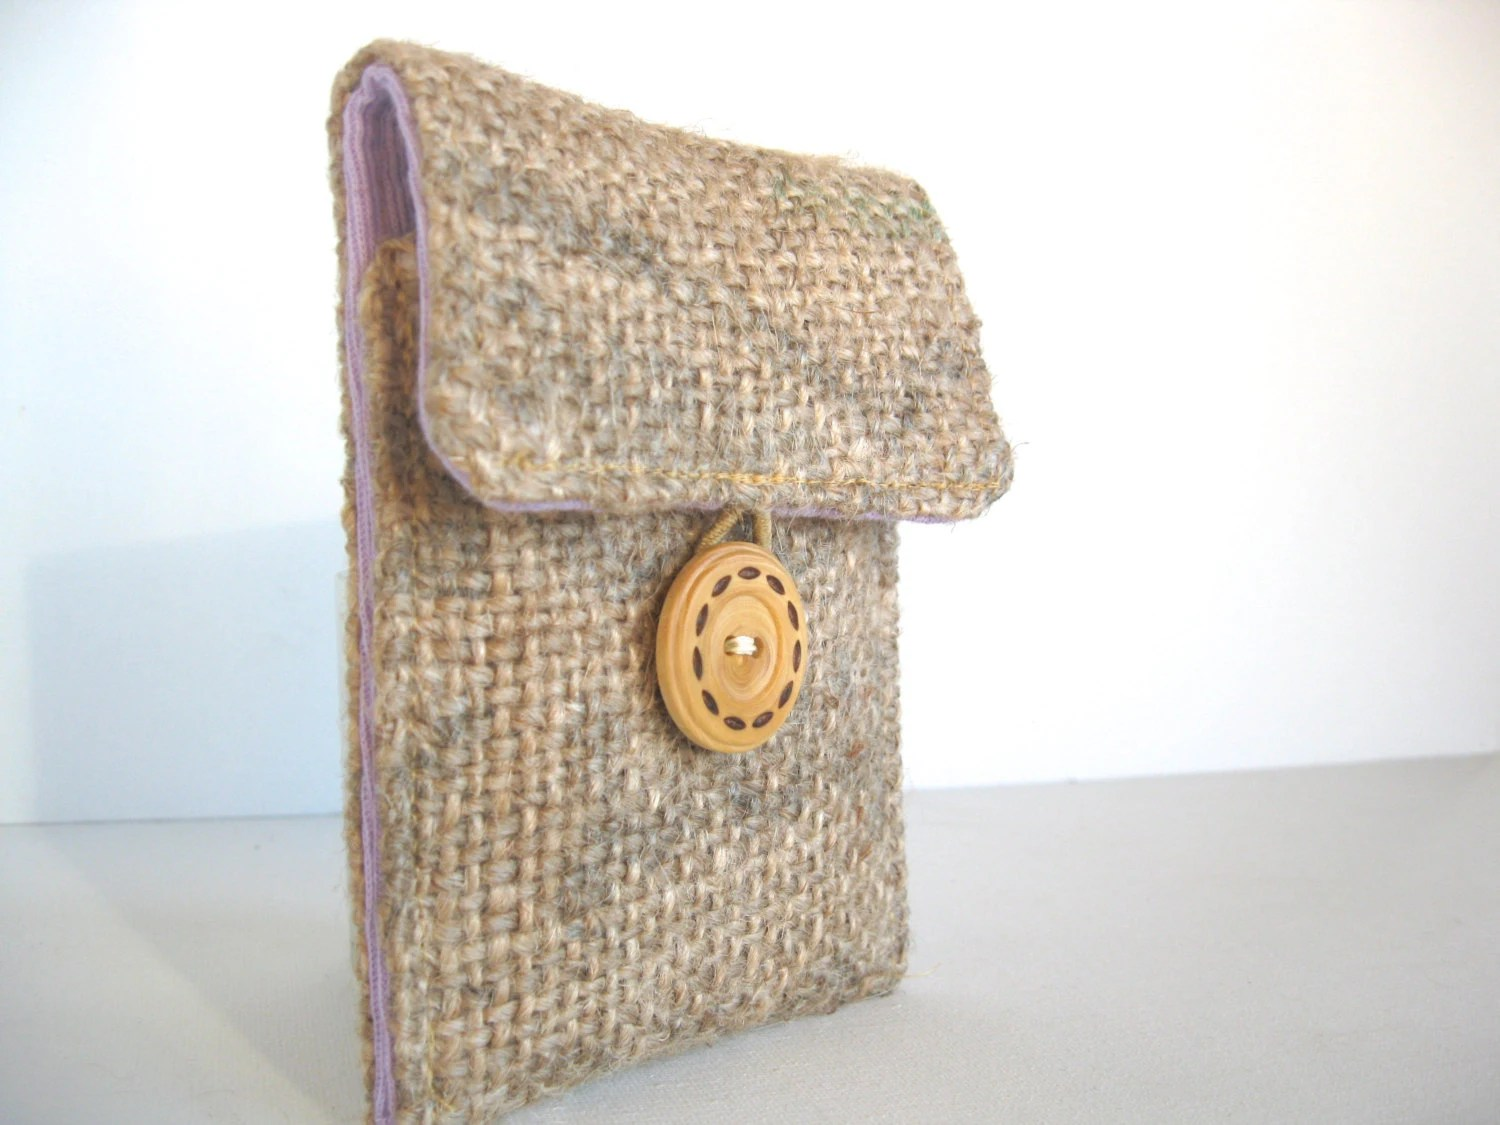 Lavender. Eco Friendly. Iphone. Cozy. Upcycled. Burlap. Tshirt. Valentine. Spring Fashion. Cloud. For Her. Teen. Tween. Free U.S. Shipping. - barefootSurfboutique